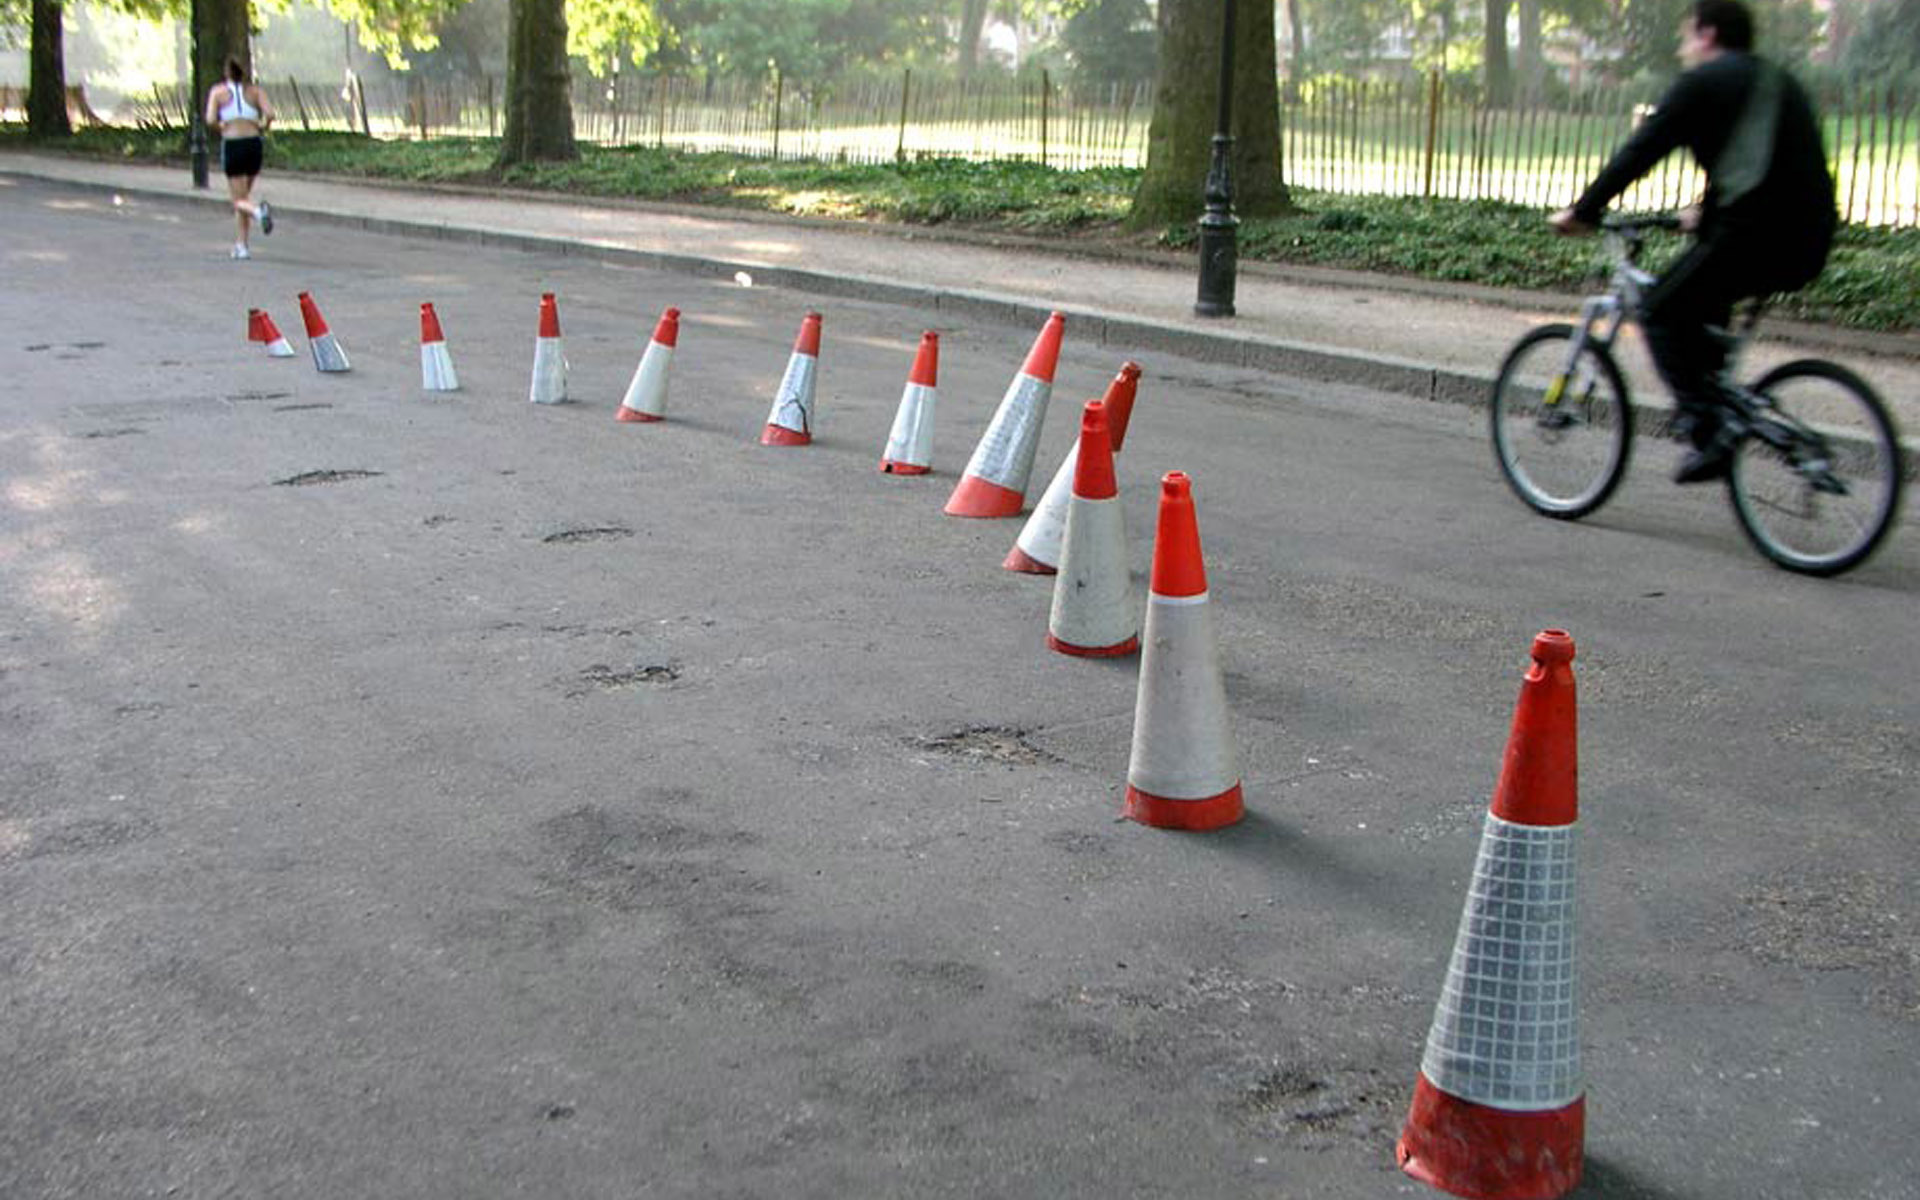 Bicycles roads traffic cones HD Wallpaper